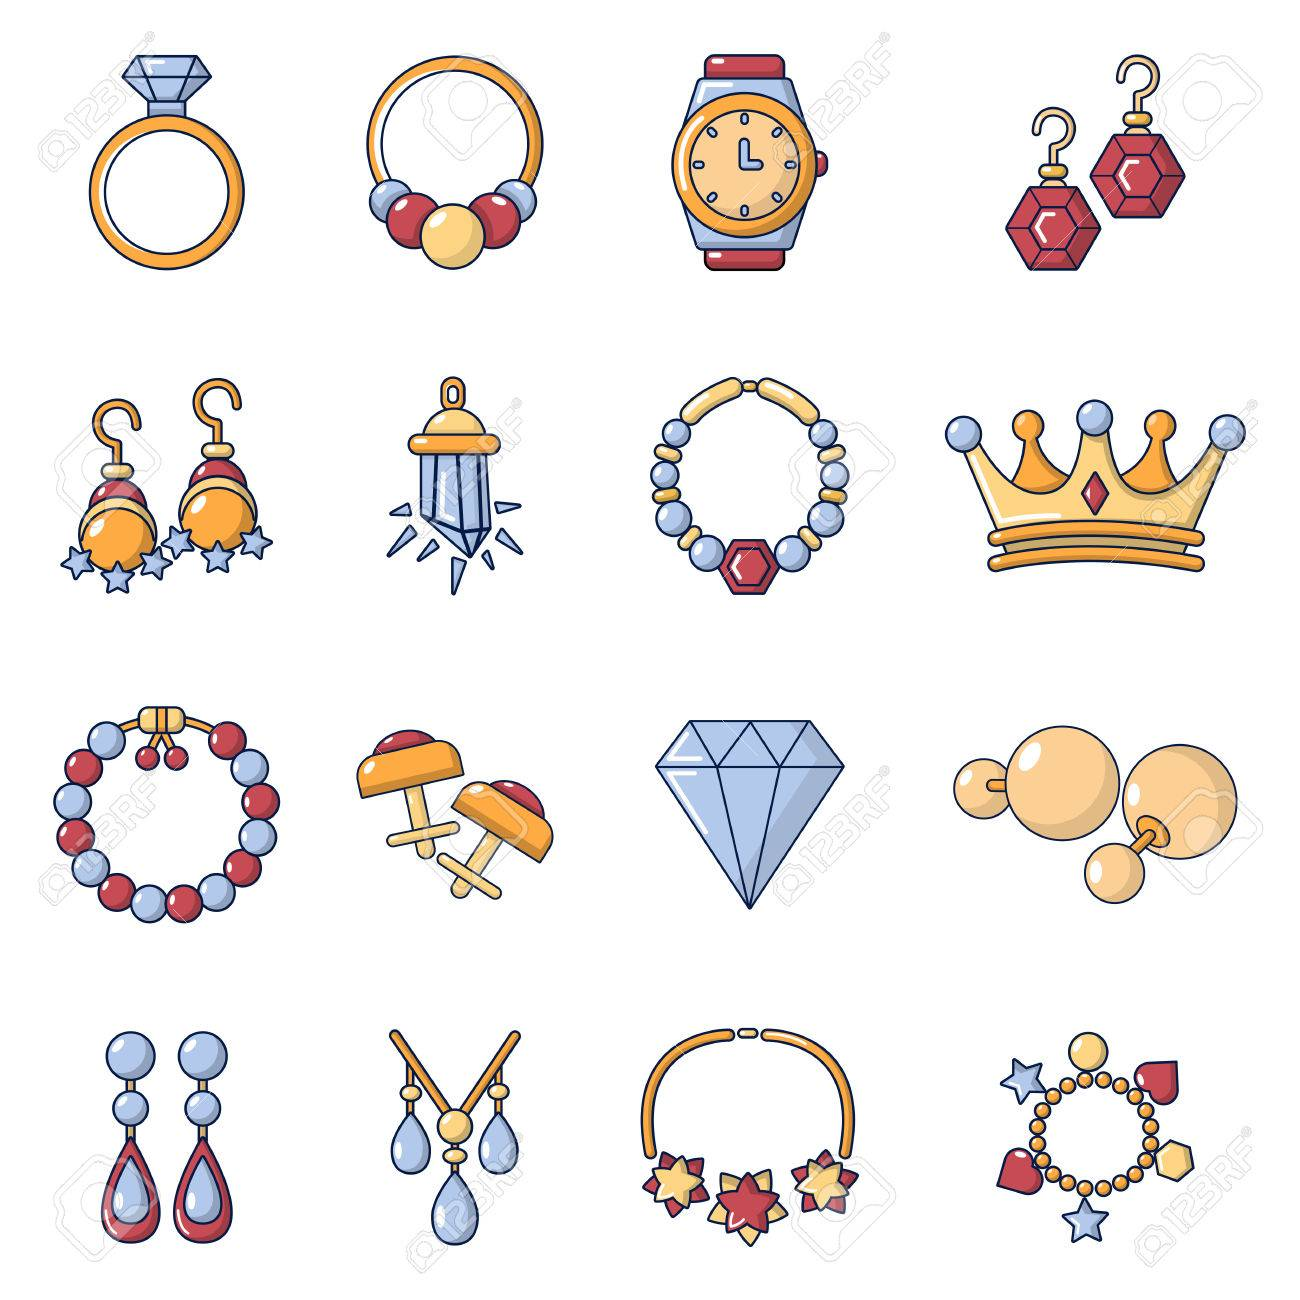 jewelry shop icons set cartoon style royalty free cliparts vectors